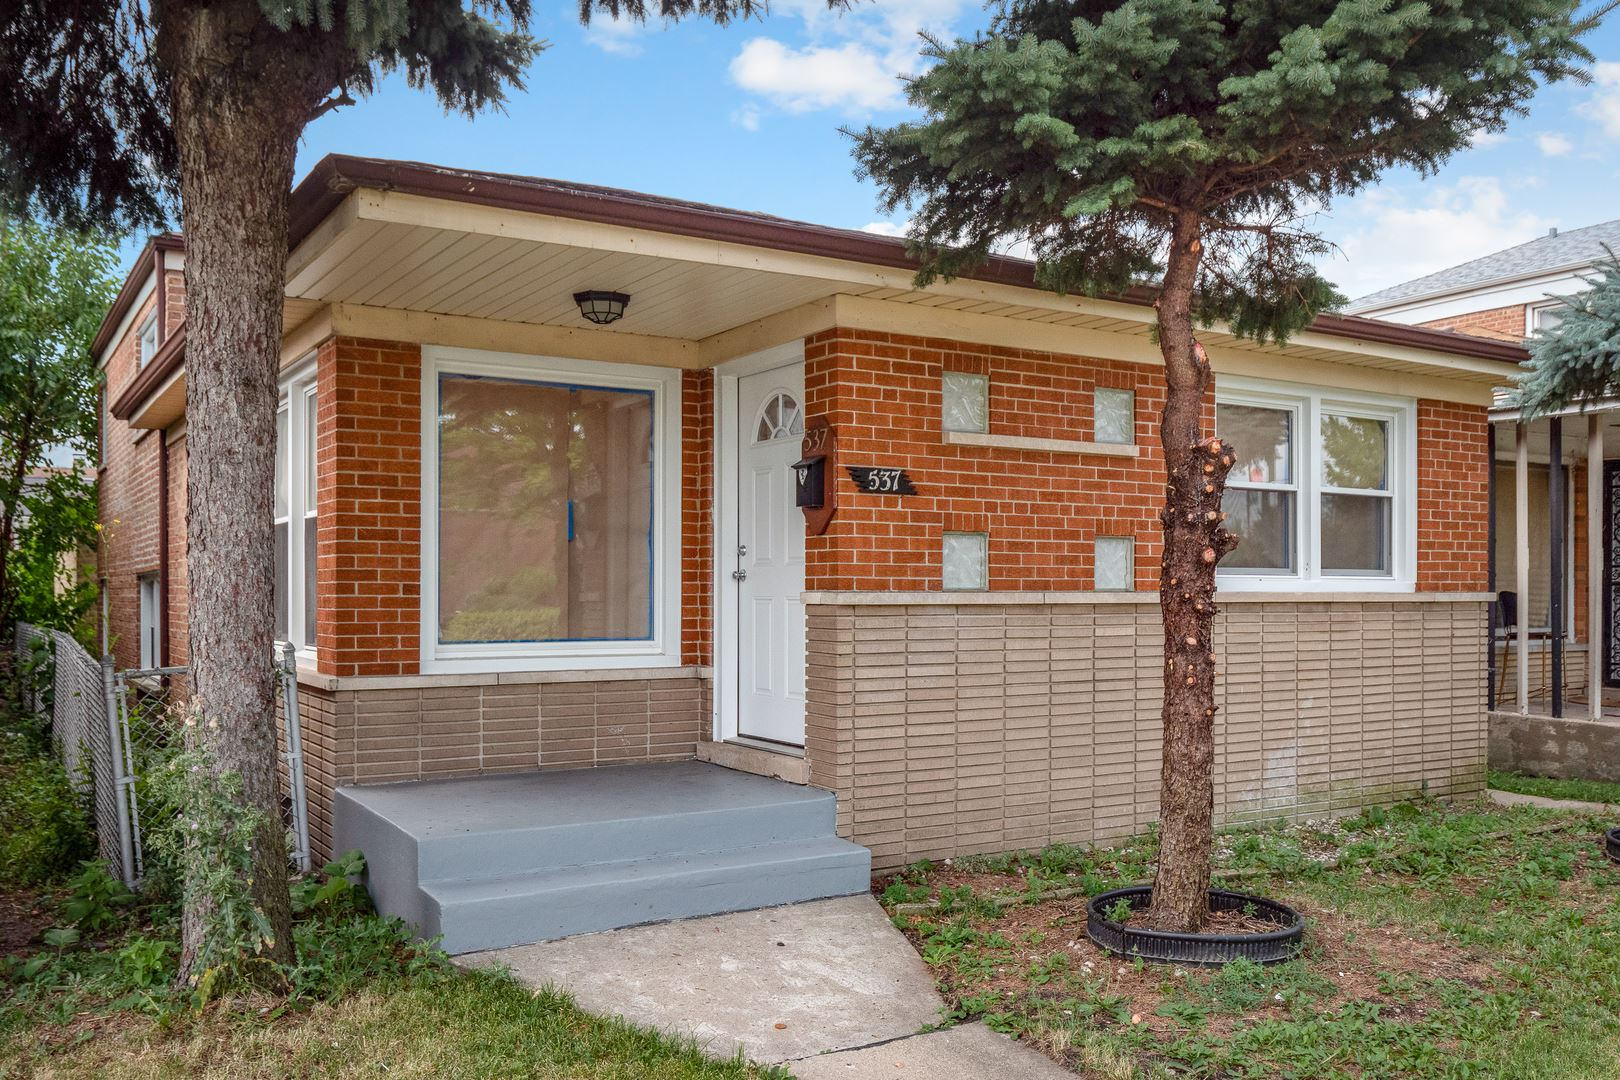 537 W 95th Street, Chicago, IL 60620 - #: 10784230